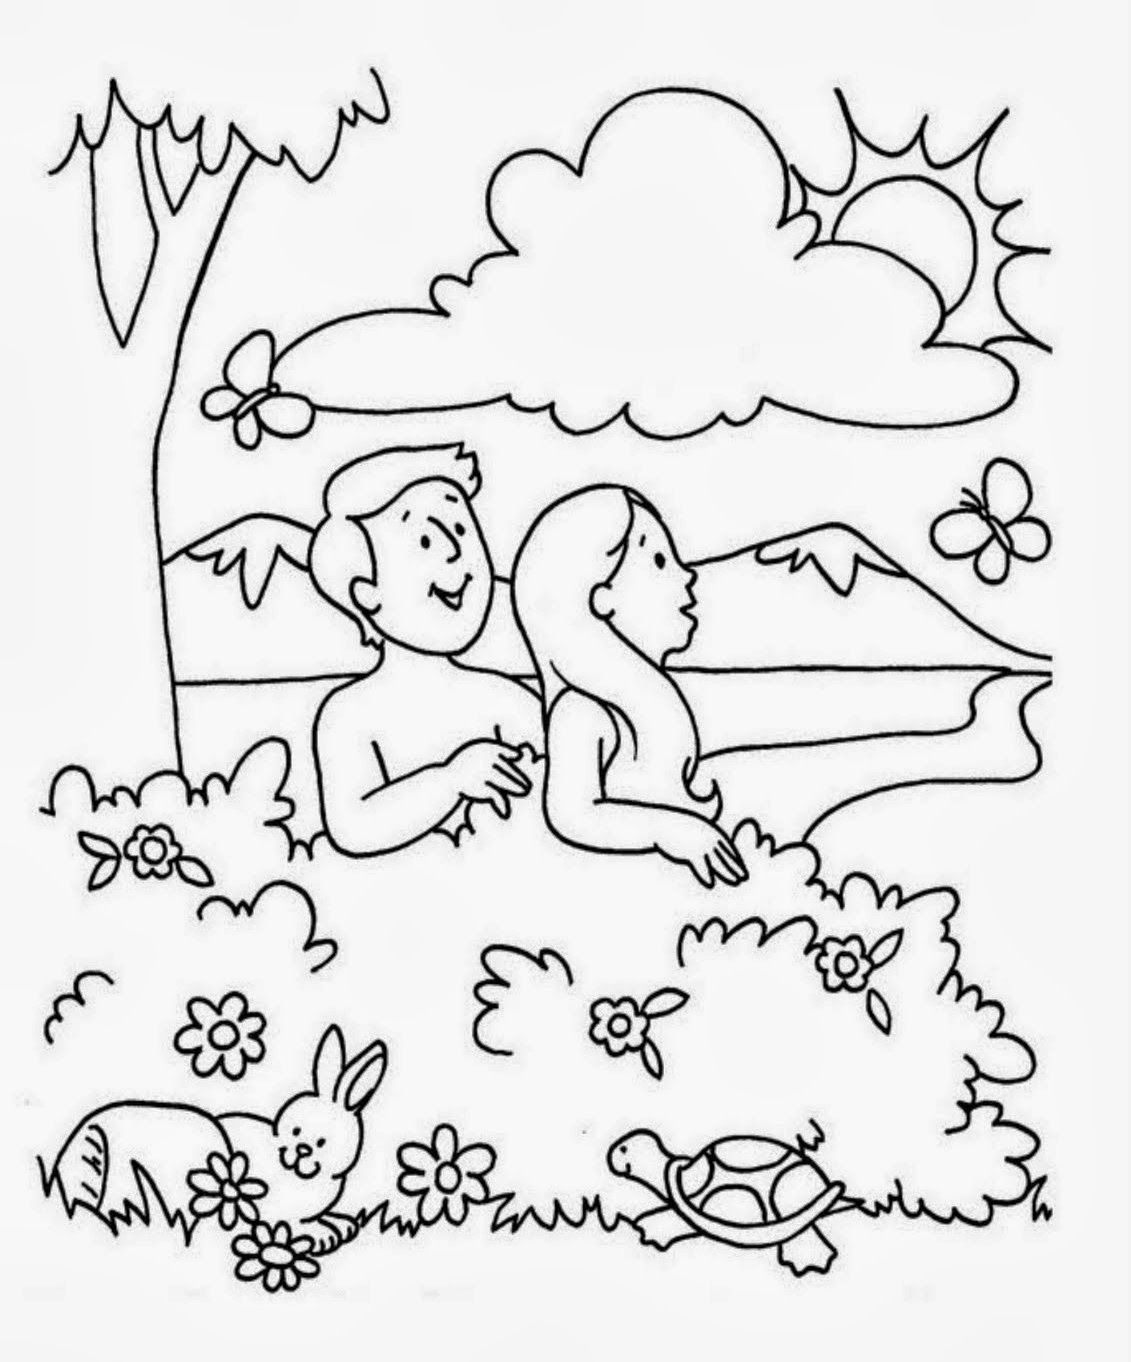 adam and eve coloring sheet 1000 images about adam and eve on pinterest maze eve and adam coloring sheet